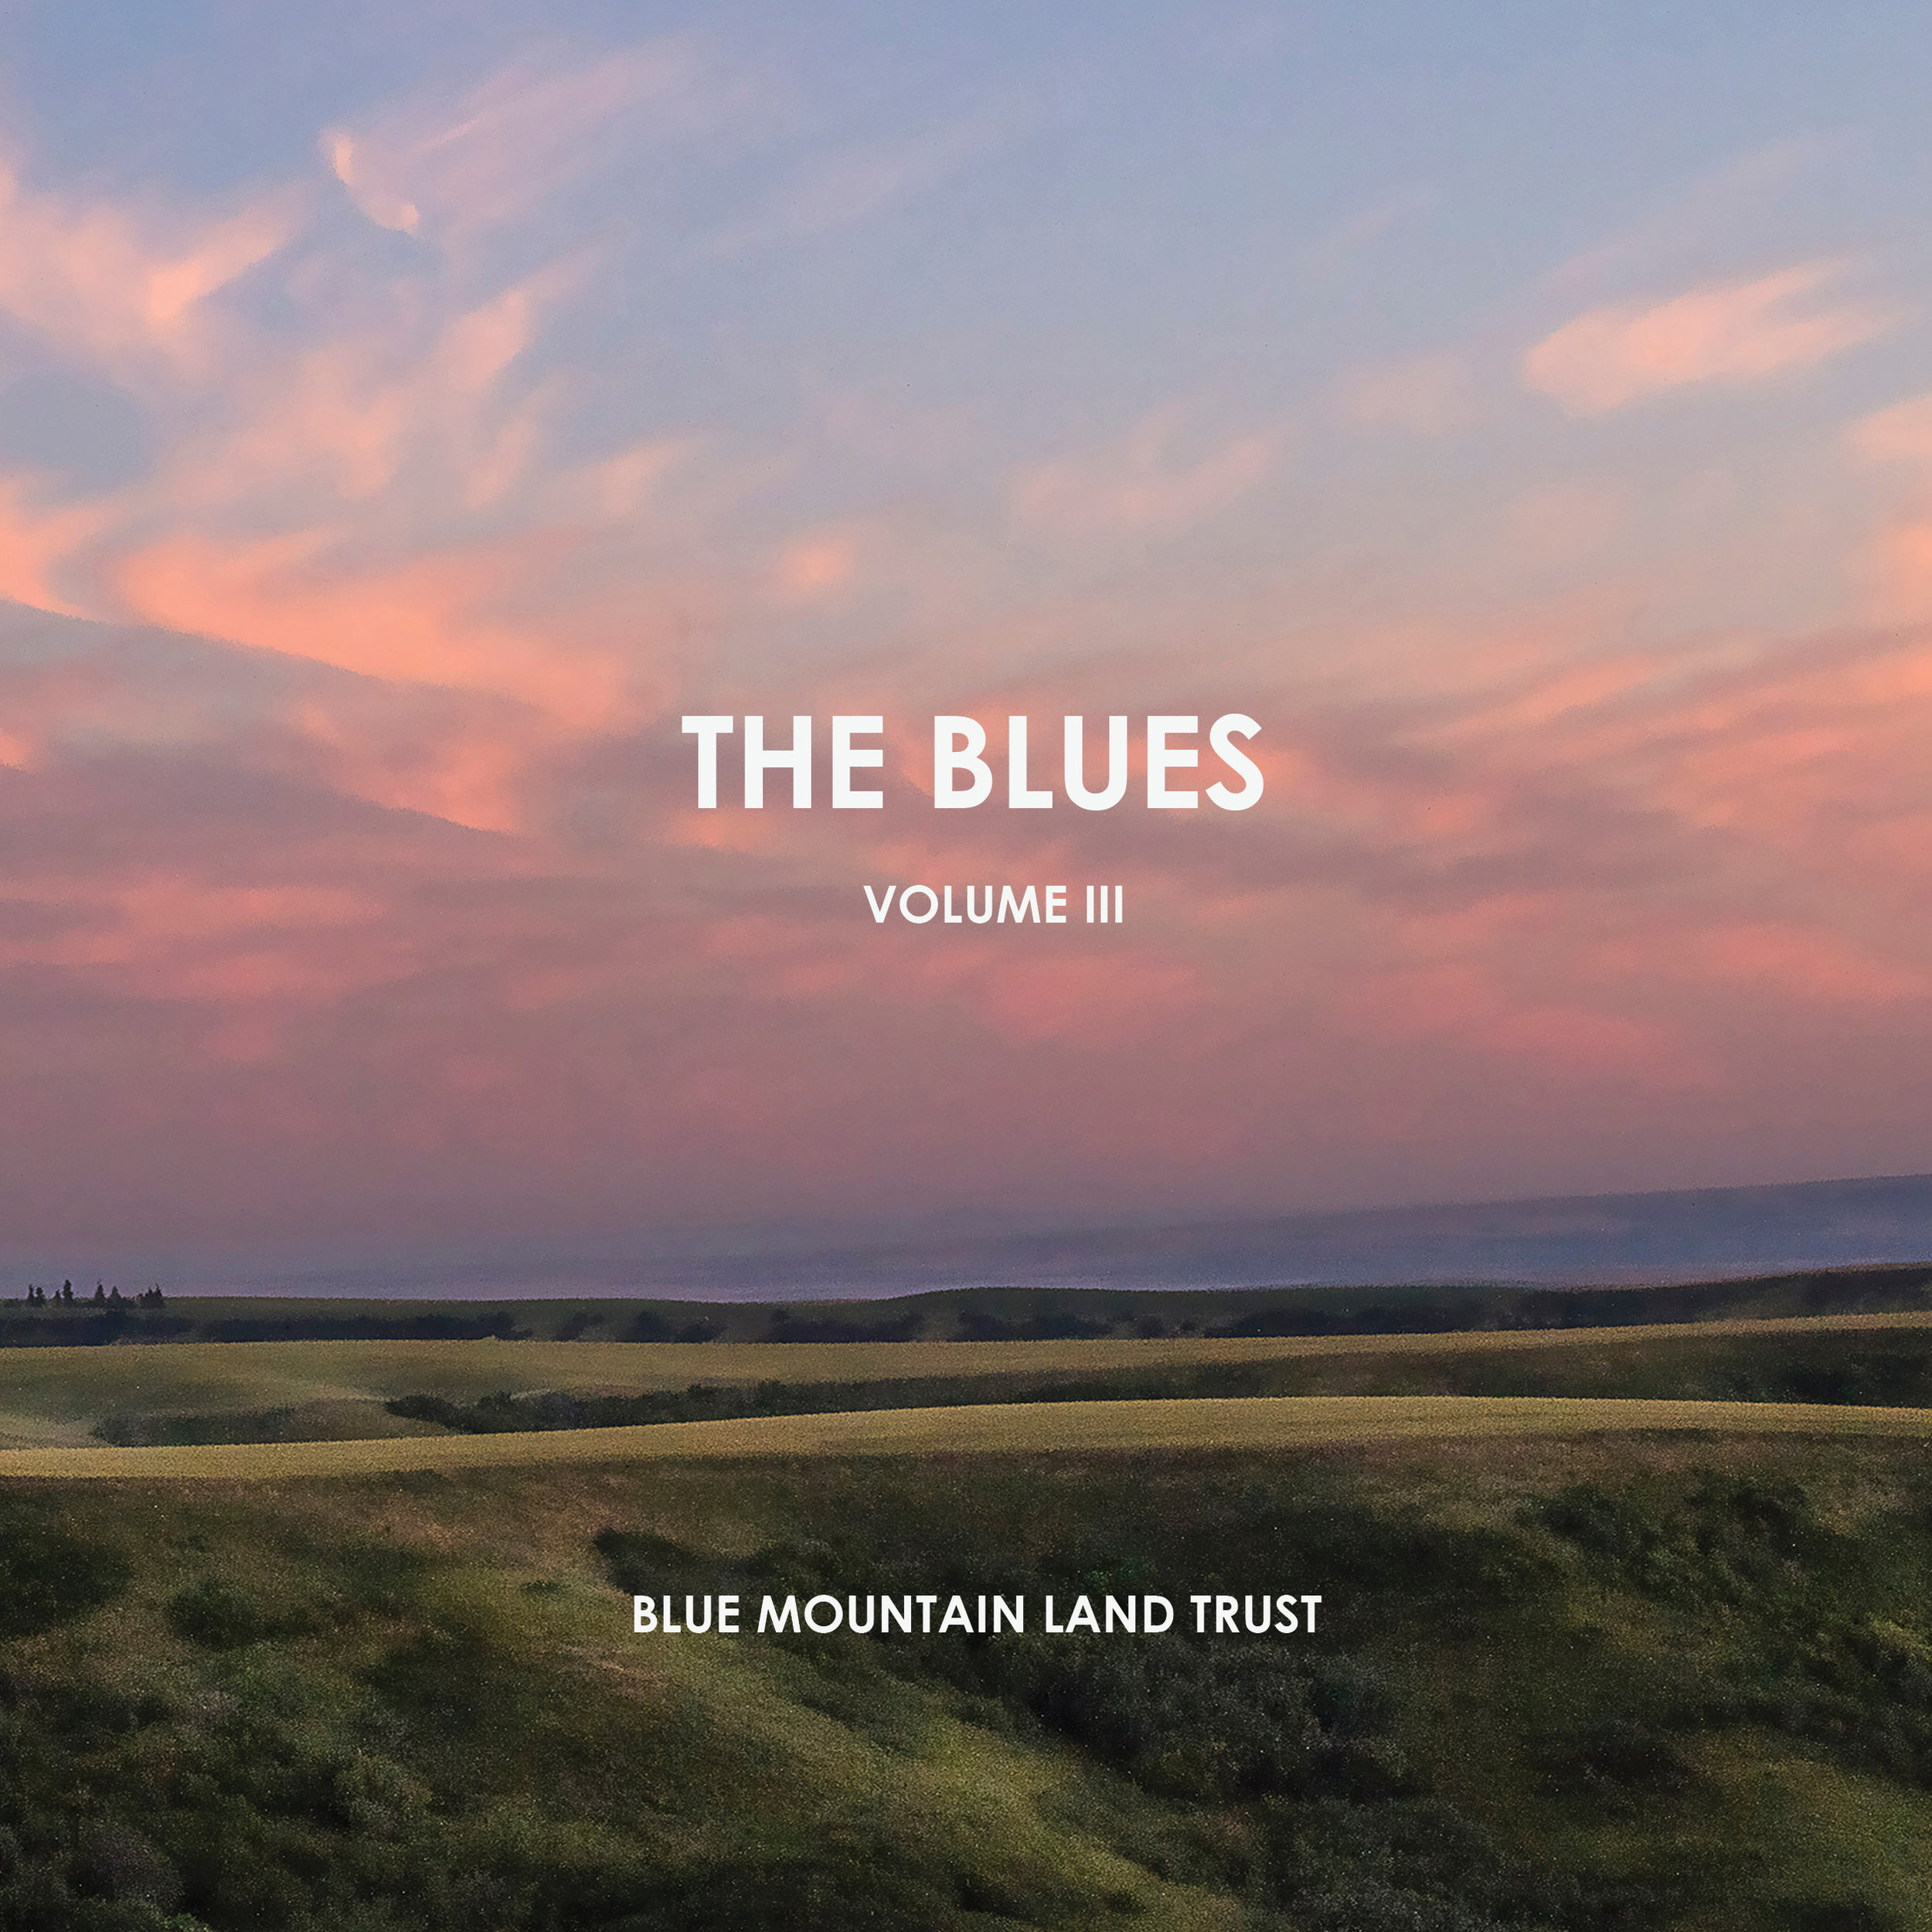 The Blues III - Cover website.jpg